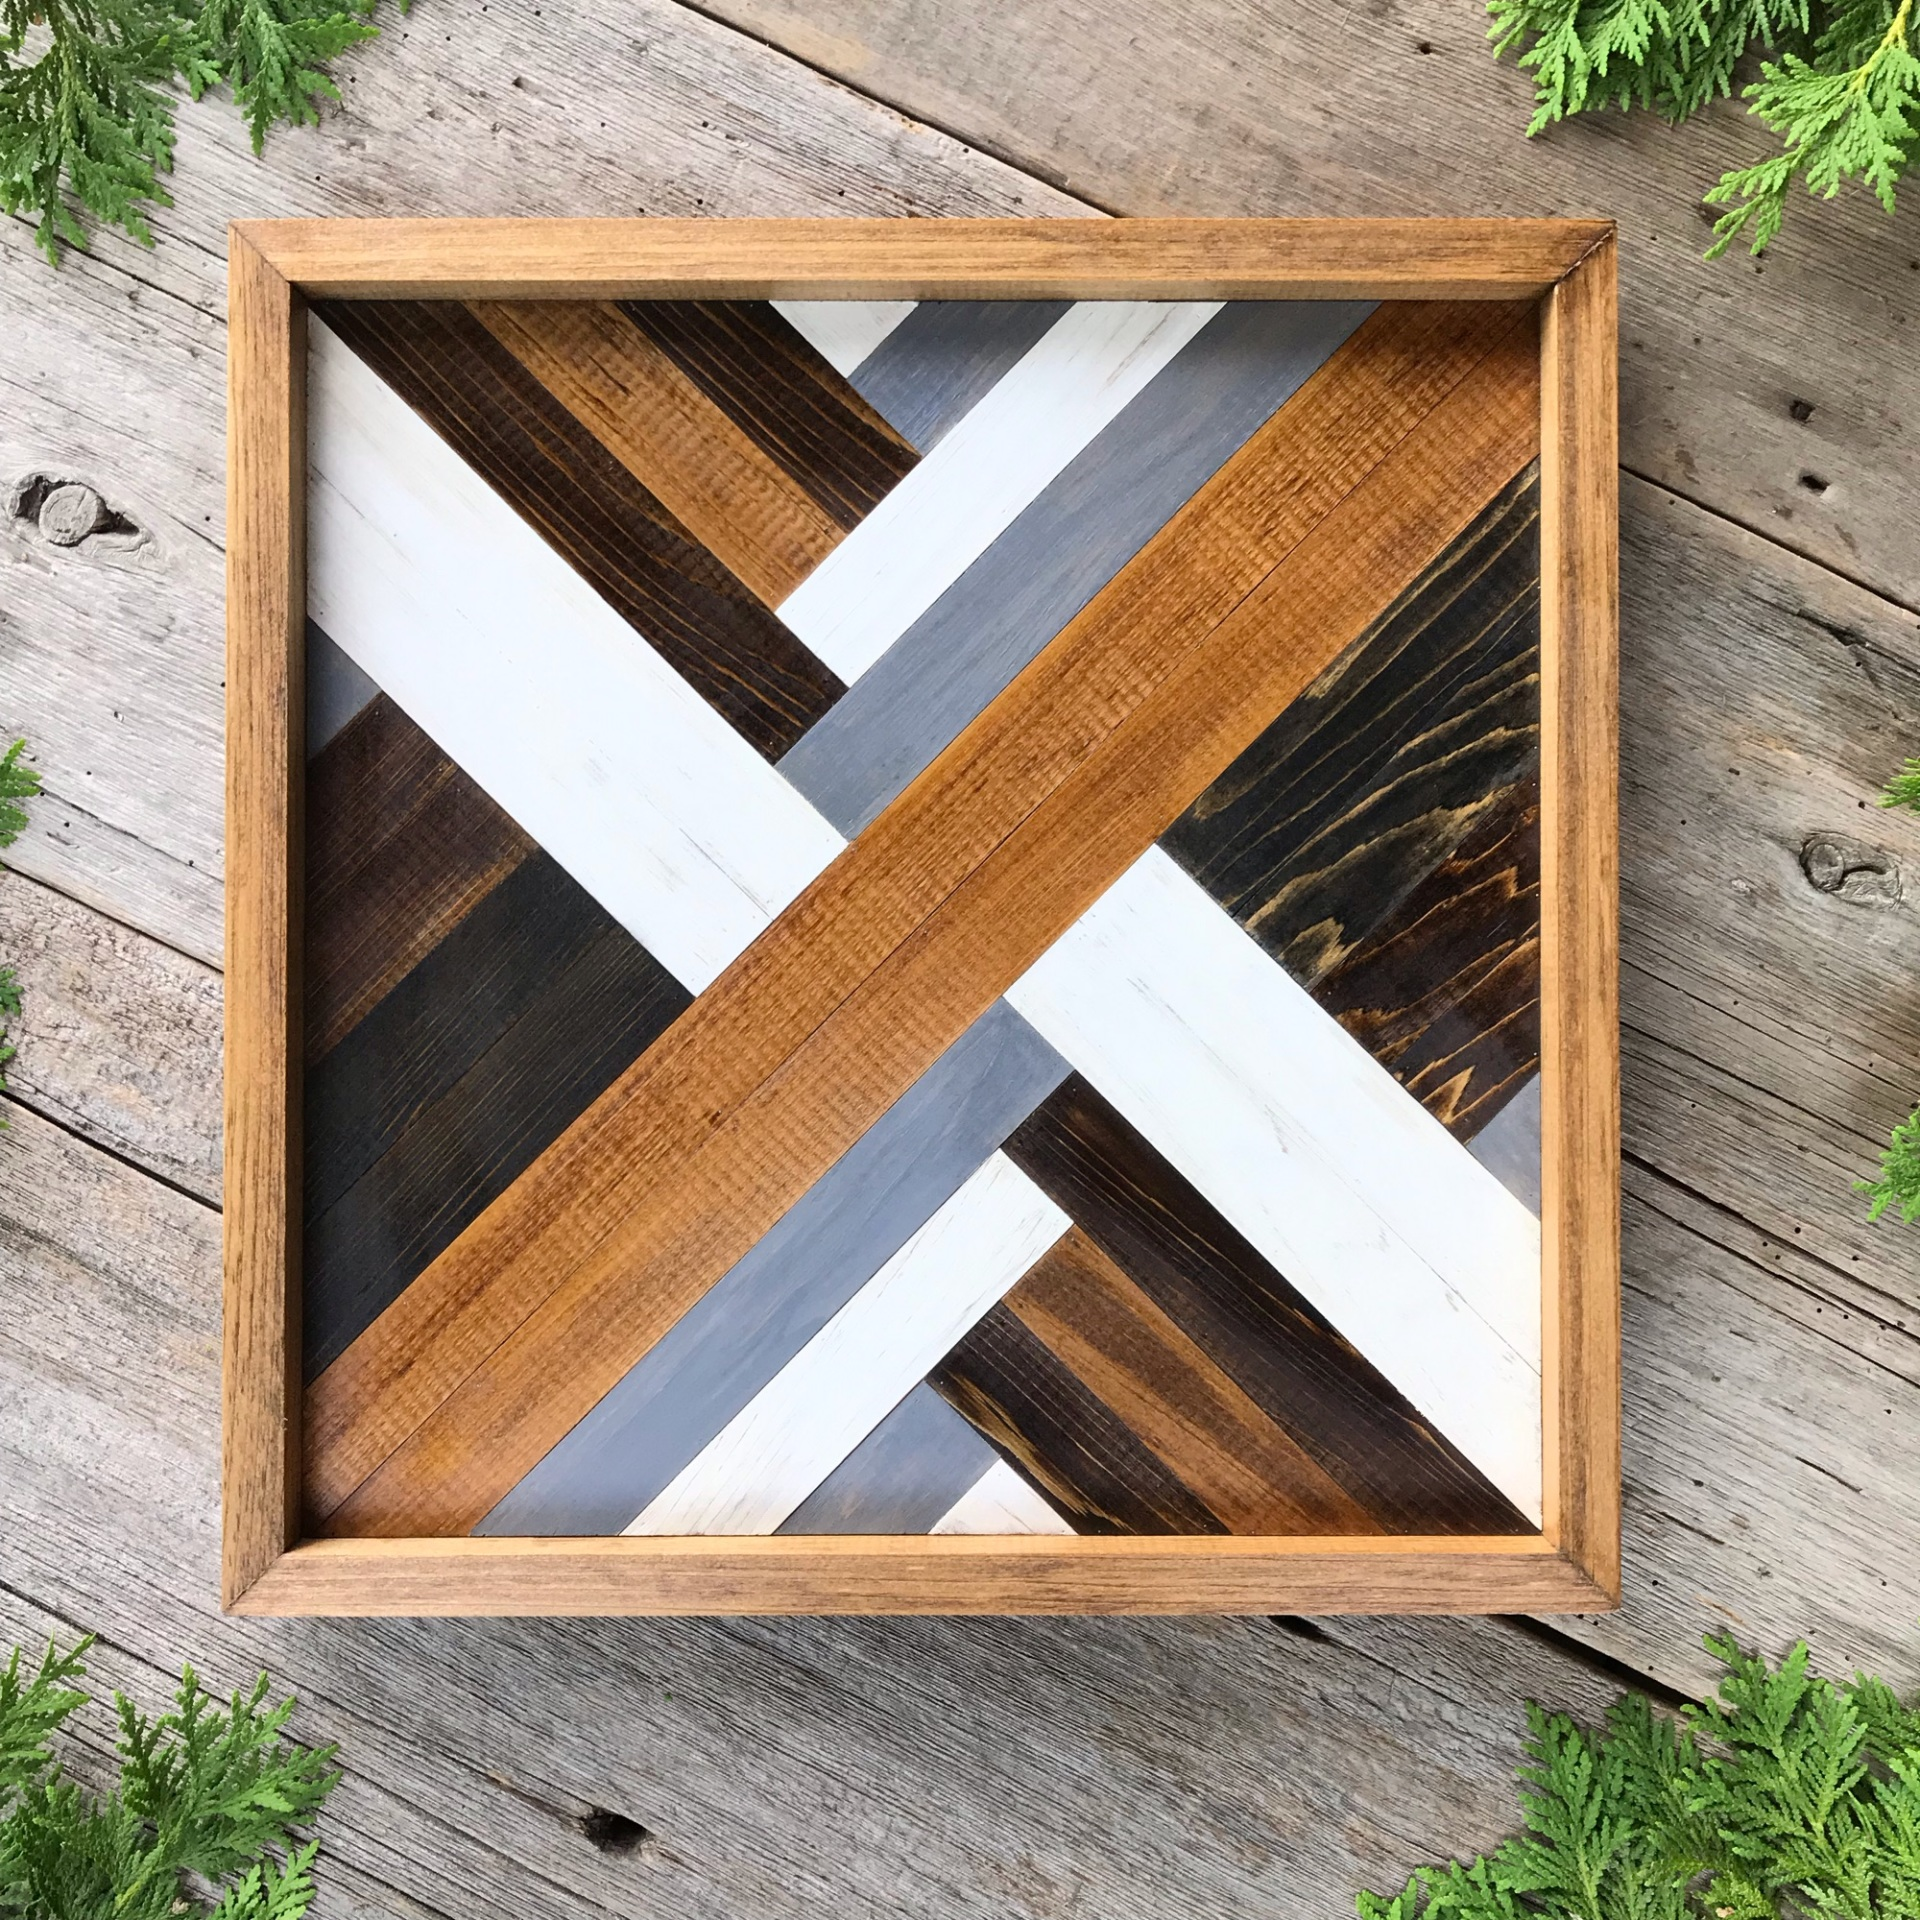 Wood Wall Art, Geometric Patterns, Barn Quilt, Wooden Barn Quilt Square, Neutral Toned Wall Decor, Modern Rustic Contemporary Design Decor